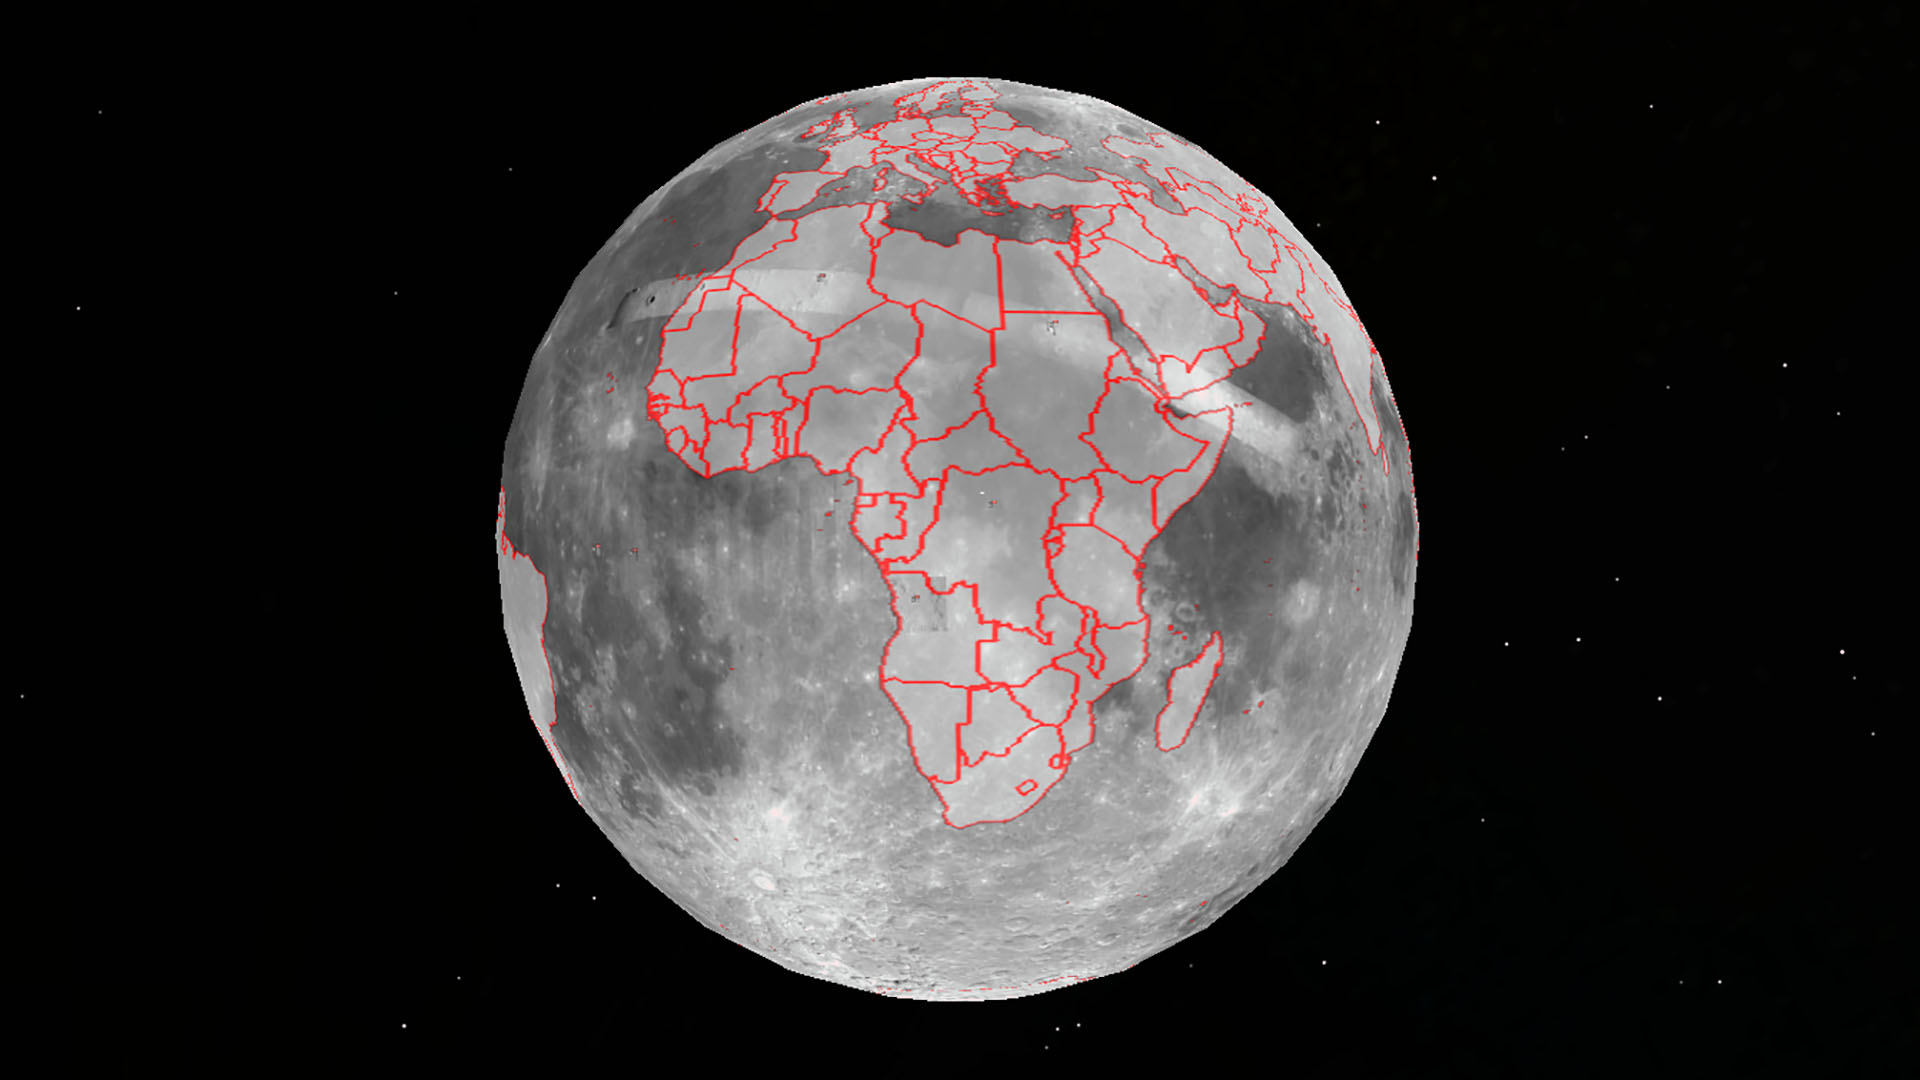 The continent of Africa projected onto the Moon in Google Earth 7.1.2.2041. The Apollo 11 landing site is visible in the north of the Democratic Republic of Congo, roughly image center.